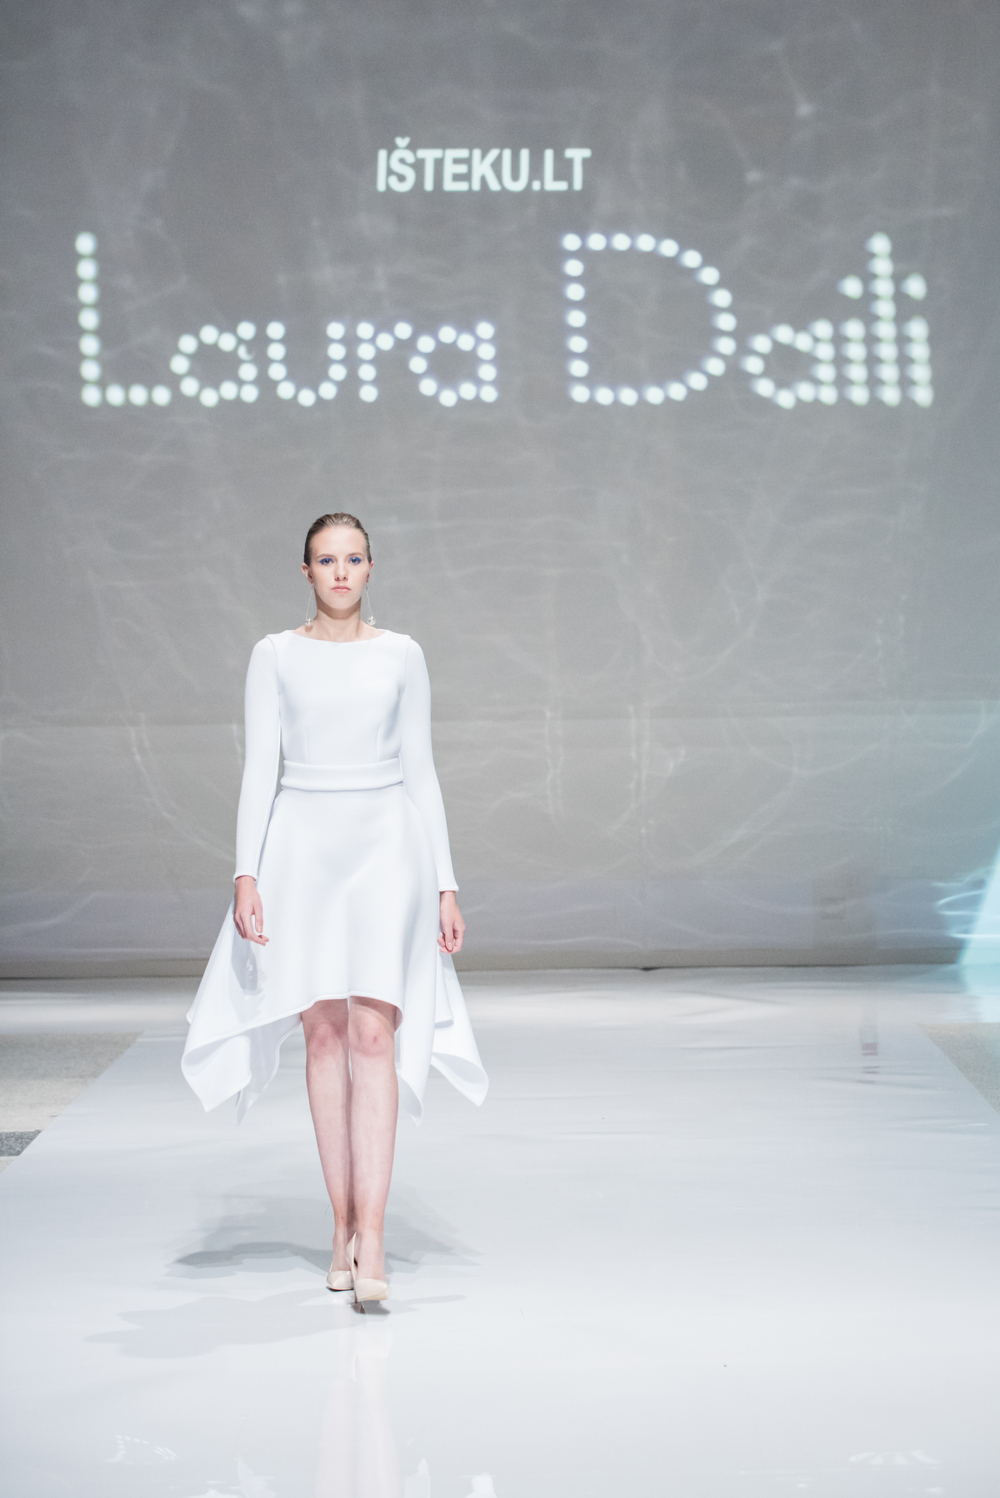 Laura Daili Bridal Collection 2017 Isteku lt (11)